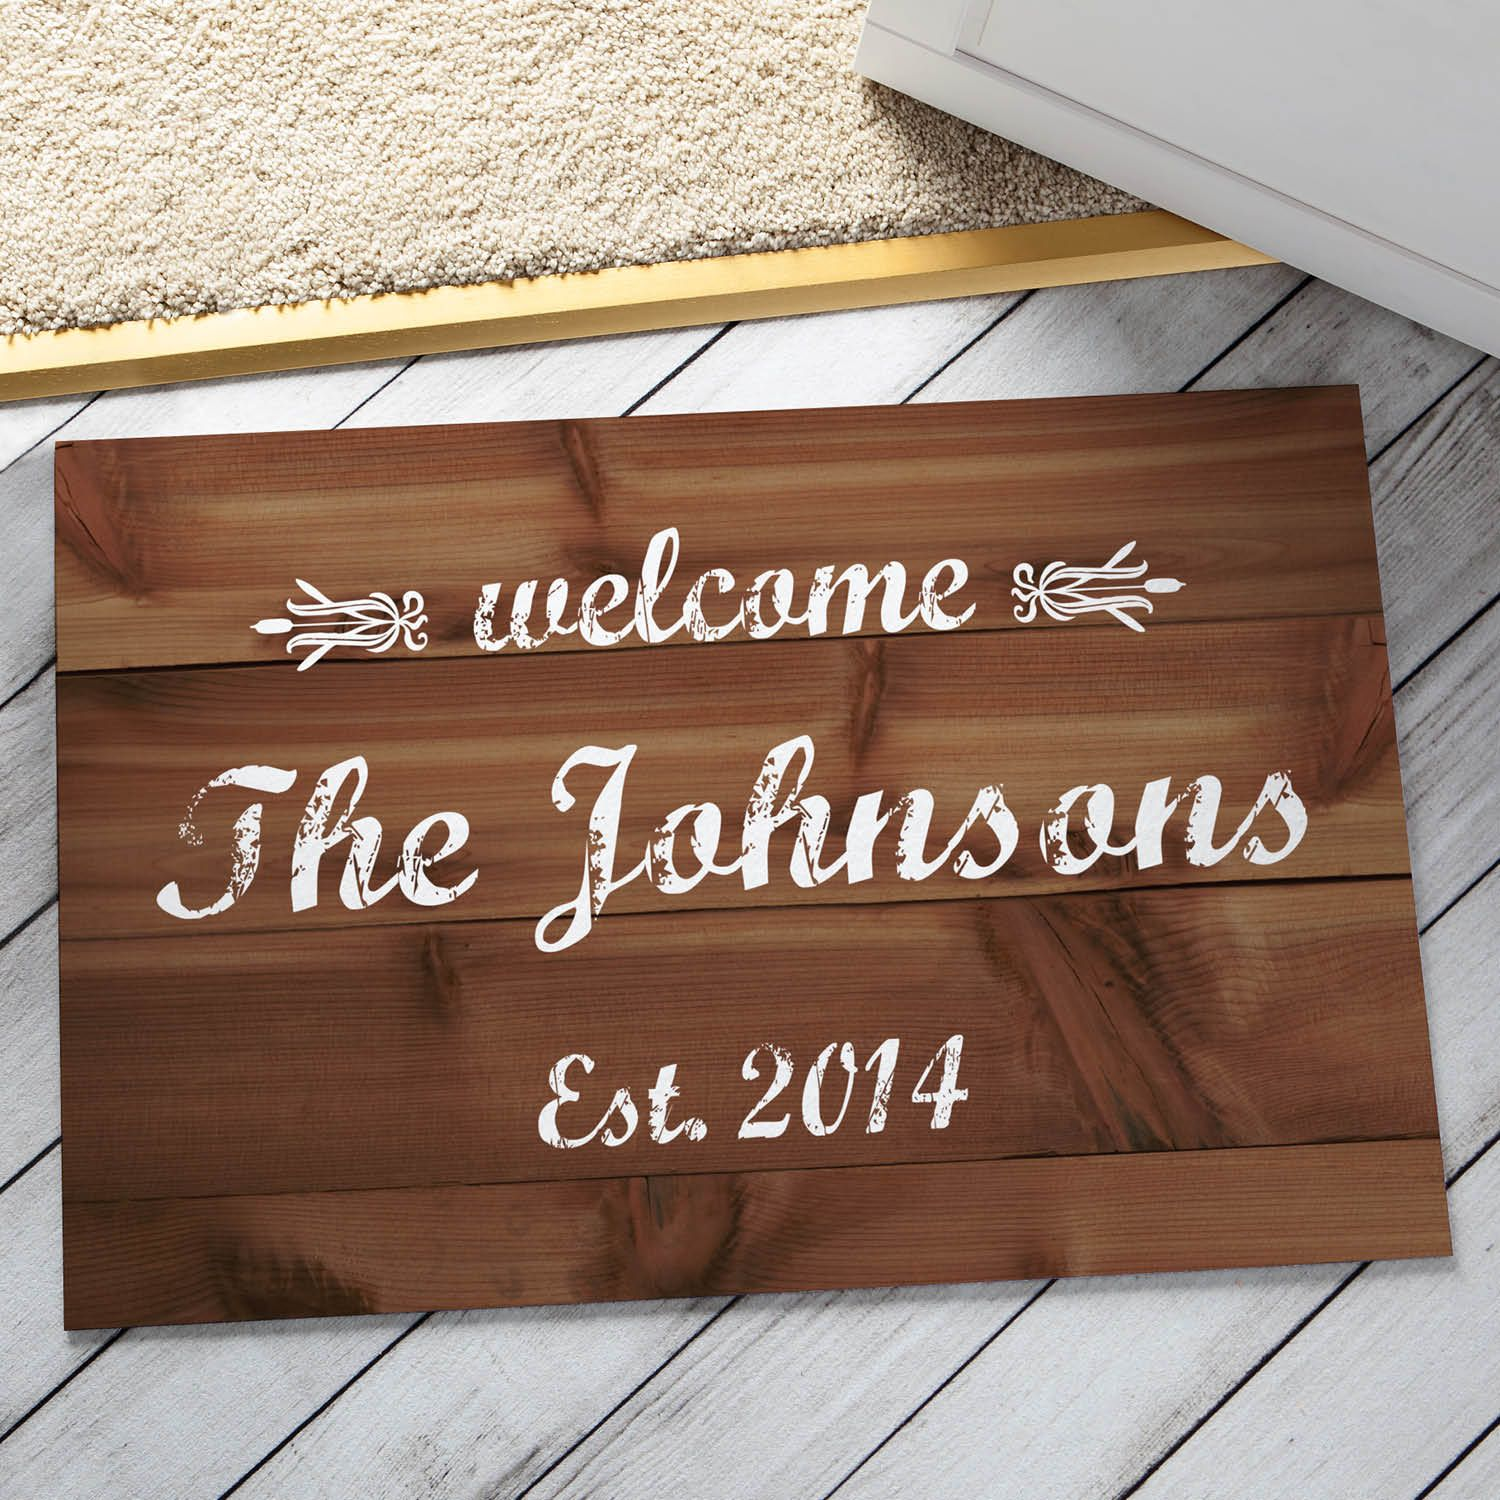 s en doormat welcome coco customized monogrammed mats personalized mat vc coir